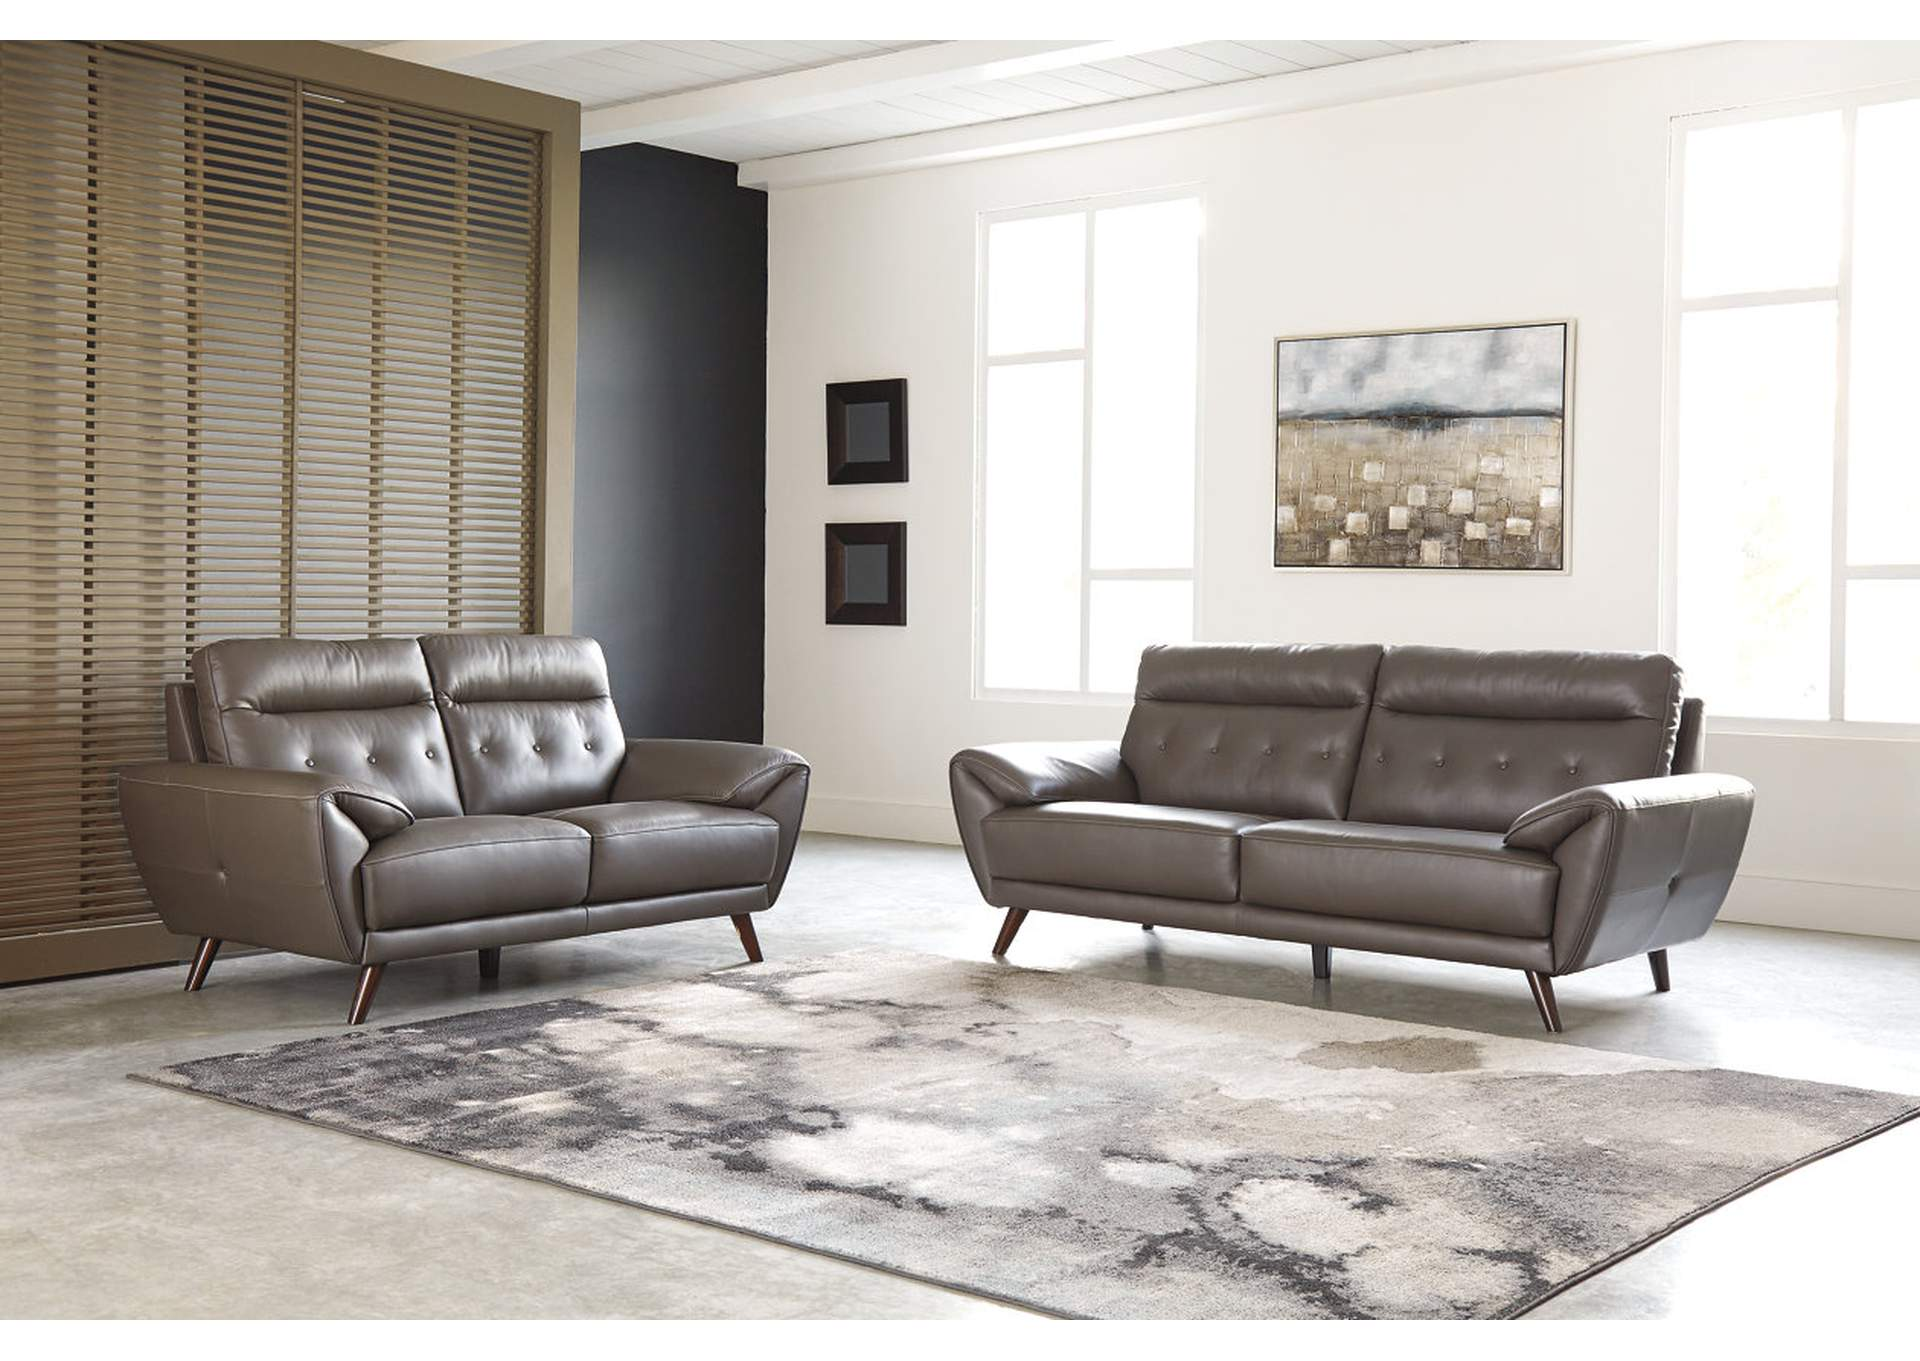 Sissoko Gray Leather Sofa and Loveseat,Signature Design By Ashley